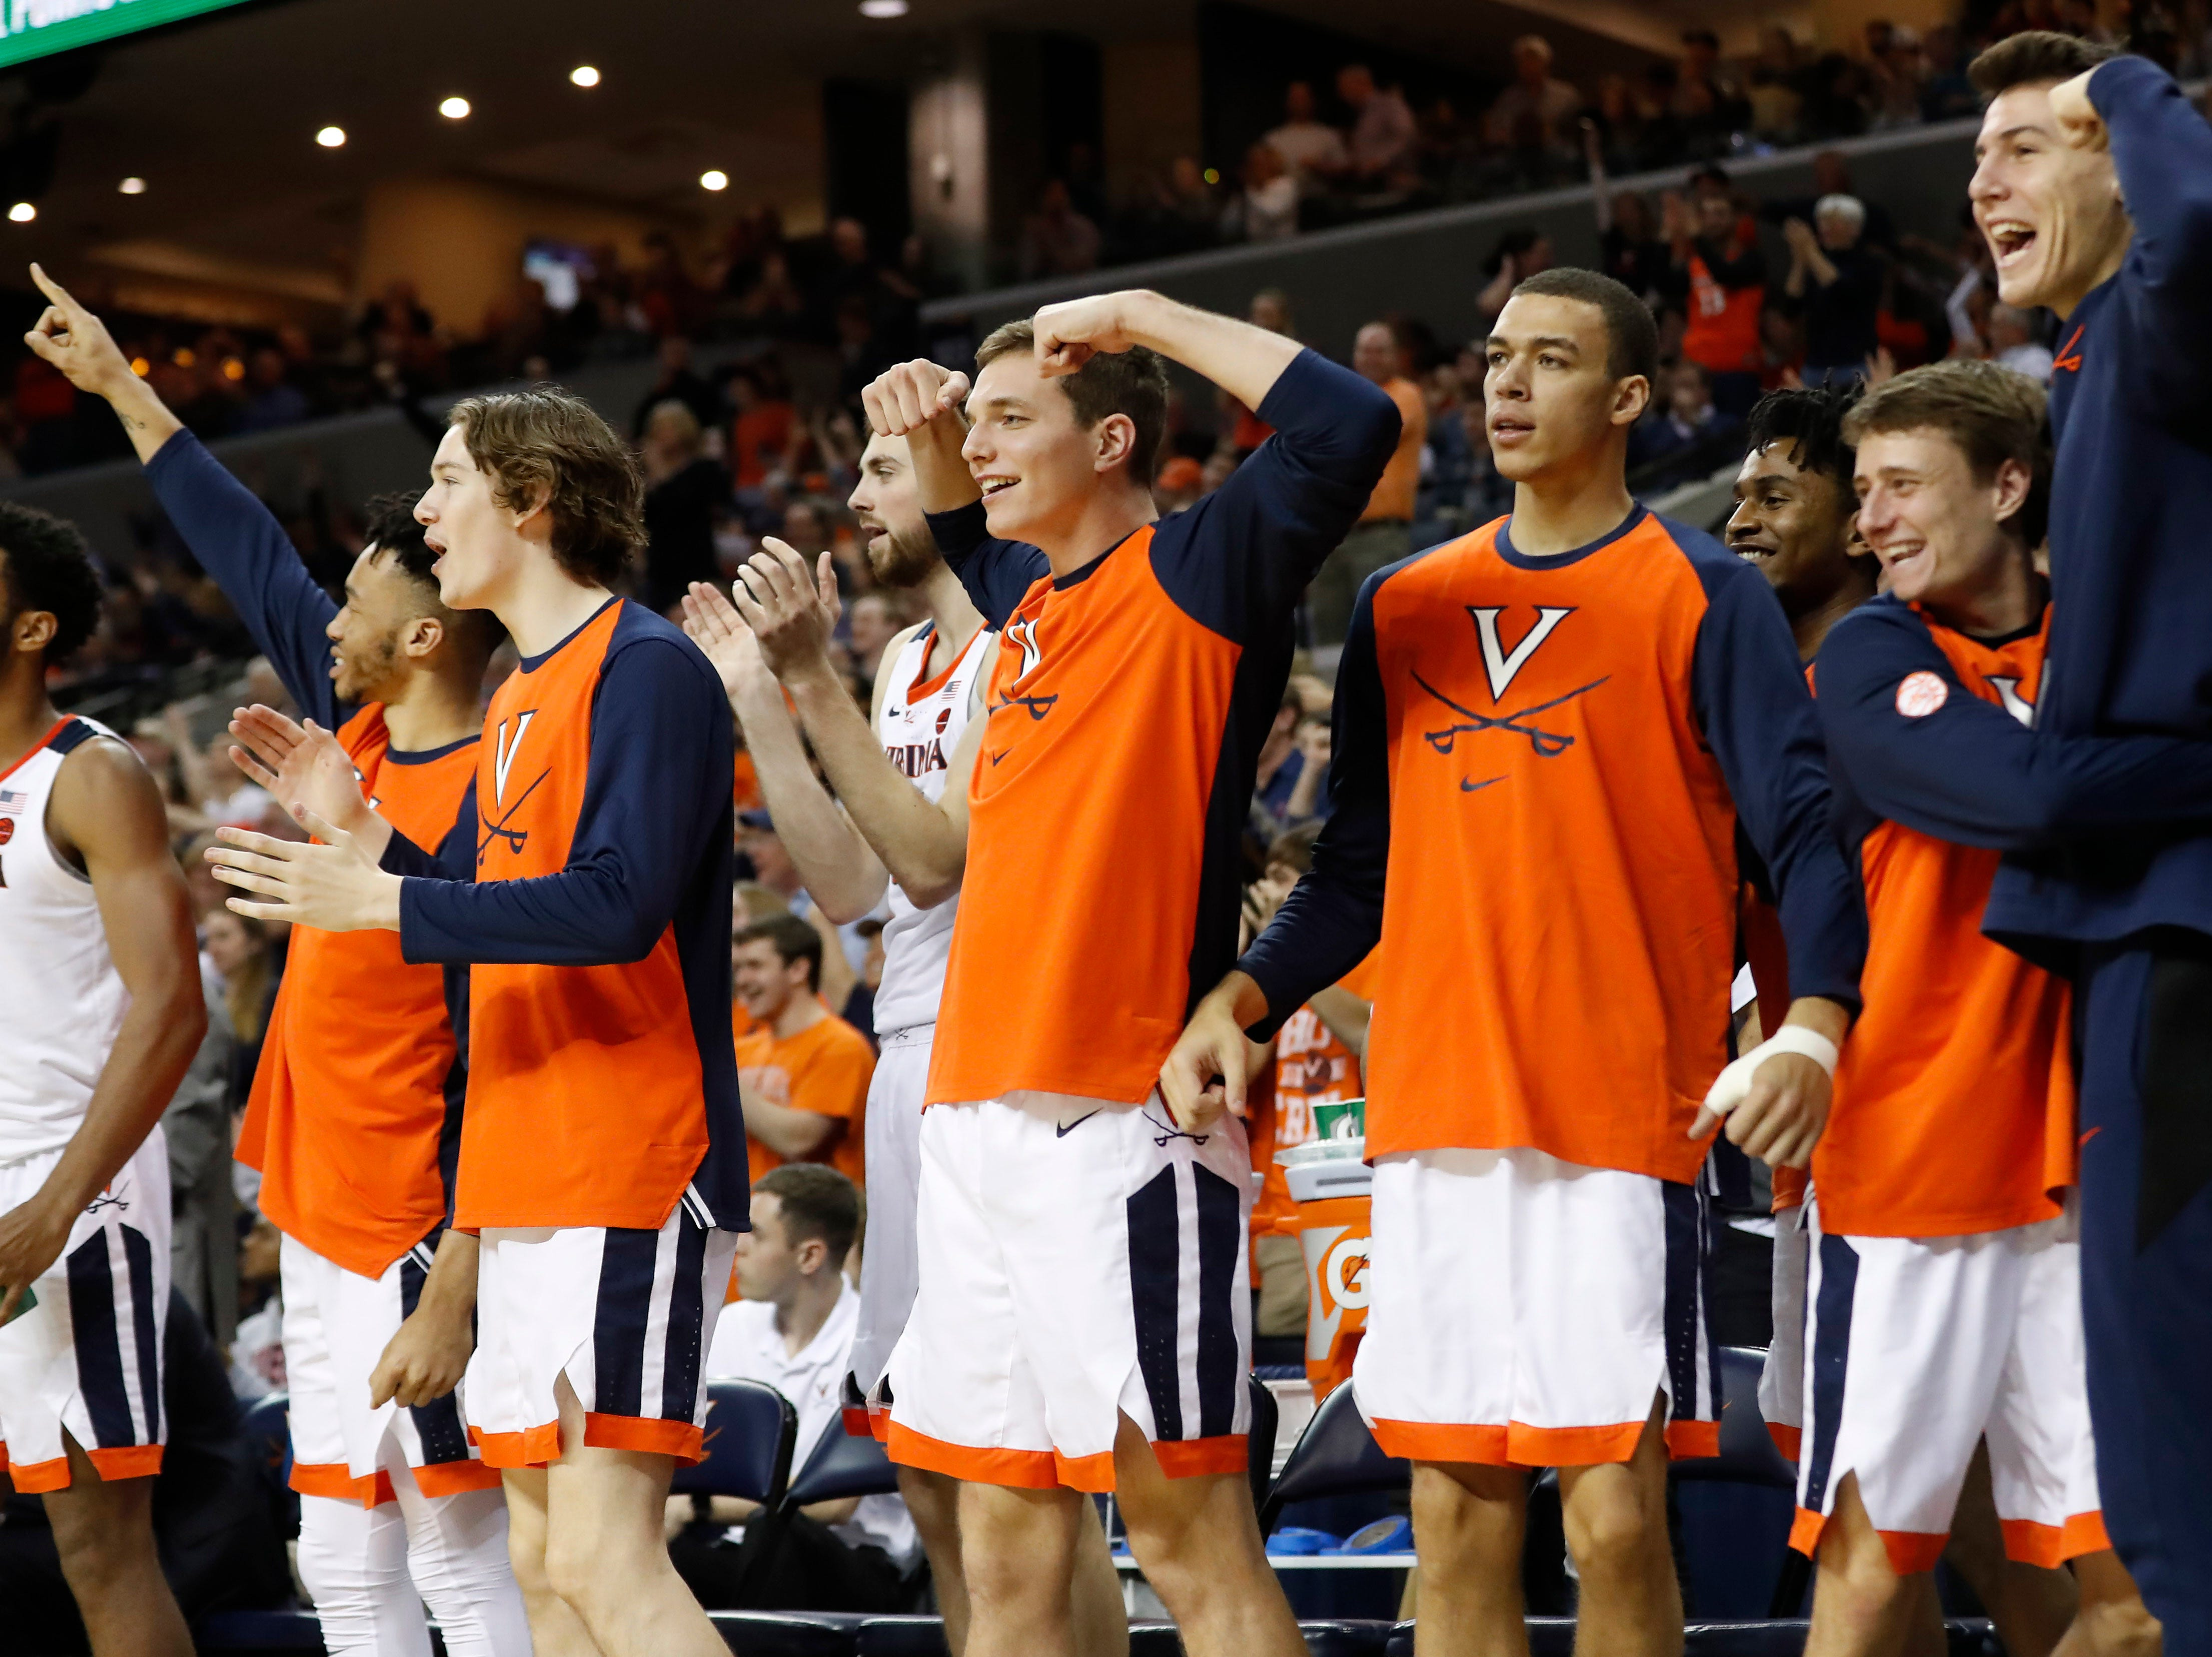 Jan 5, 2019; Charlottesville, VA, USA; Virginia Cavaliers players celebrate on the bench against the Florida State Seminoles in the first half at John Paul Jones Arena. Mandatory Credit: Geoff Burke-USA TODAY Sports